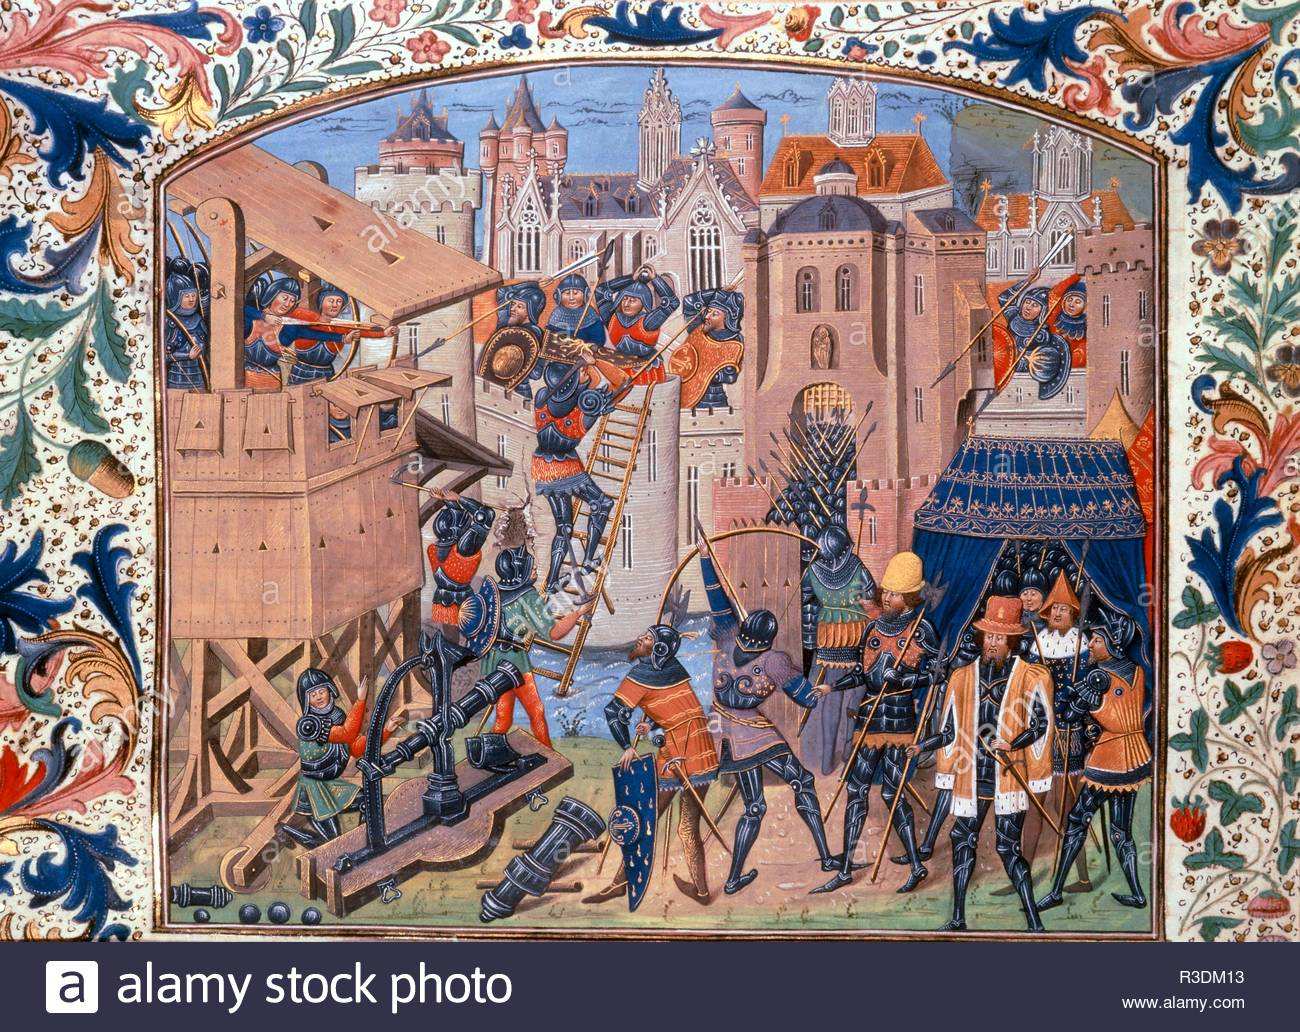 Hundred Years War between France and England 1339-1453, Siege of Ribodane with cannon and Longbow from Chronicles of England by Jean de Wavrin, 14-1500. Museum: BRITISH LIBRARY. - Stock Image